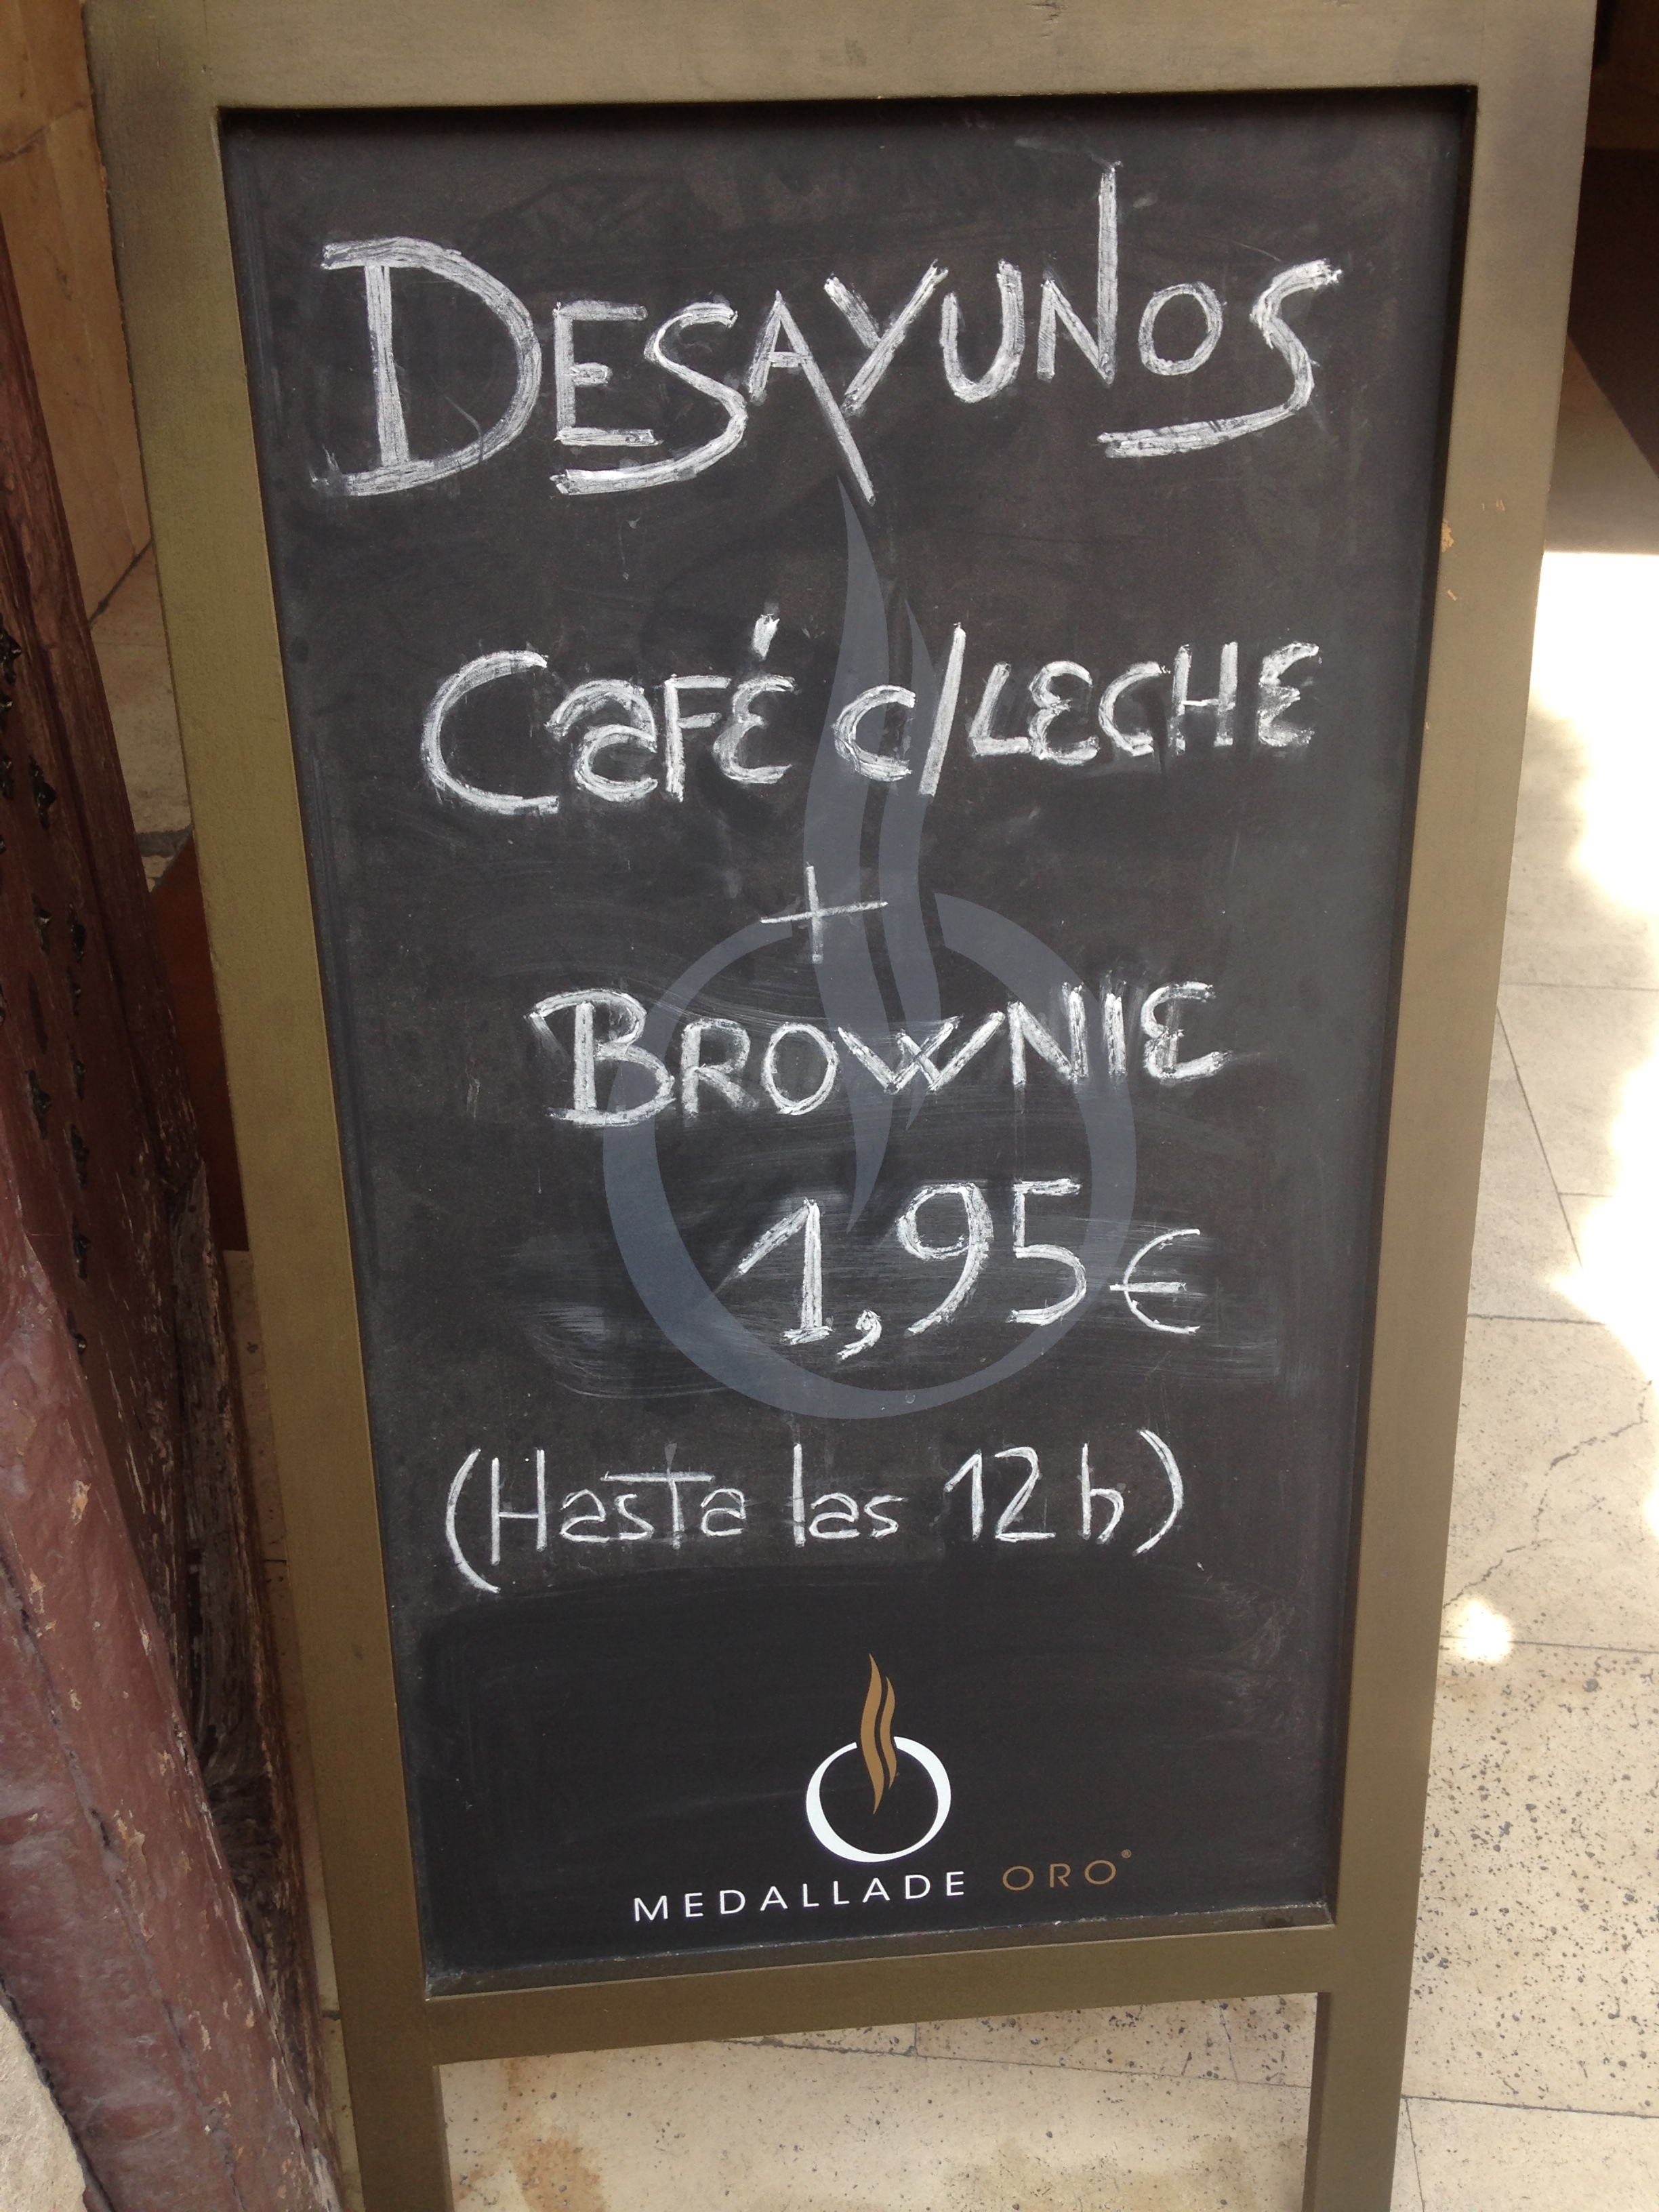 """I saw this sign walking home today. It reads, """"Breakfast: Café con Leche and Brownie, 1.95 (Until 12).¨ Brownies are one of my favorite food groups! I have to go to there."""